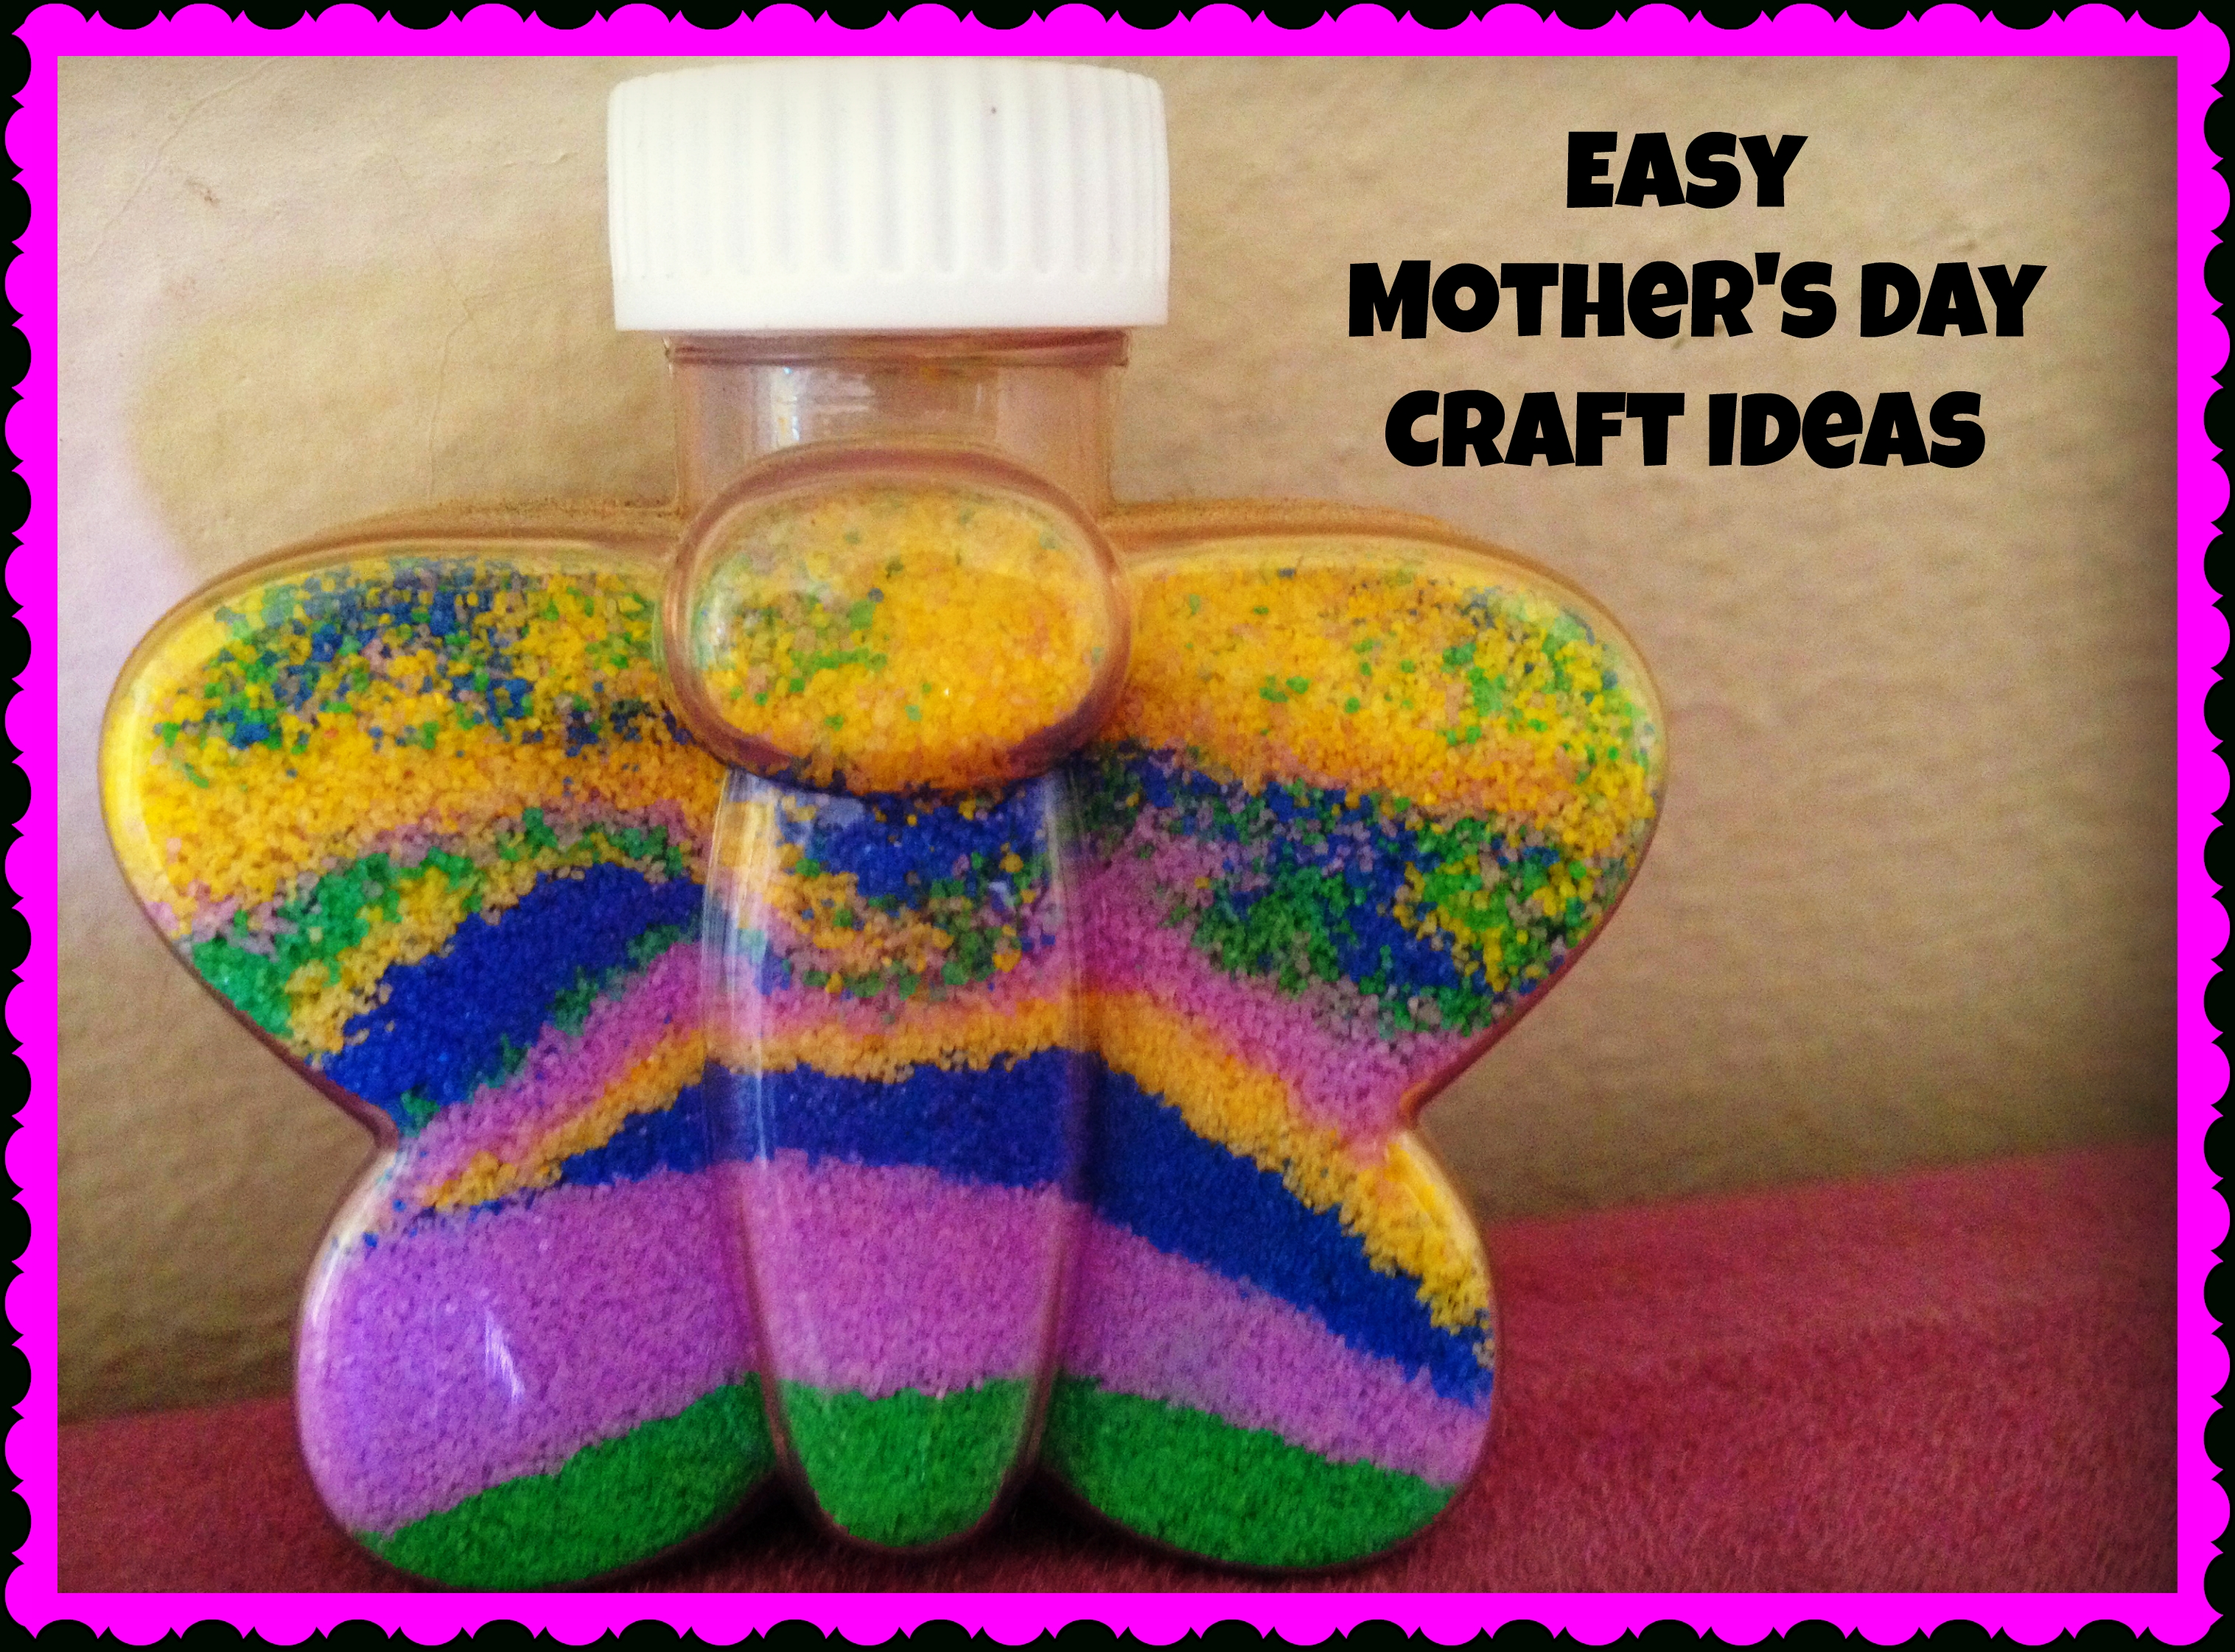 10 Fabulous Craft Ideas For Mothers Day easy mothers day crafts kids can make momsla 2020